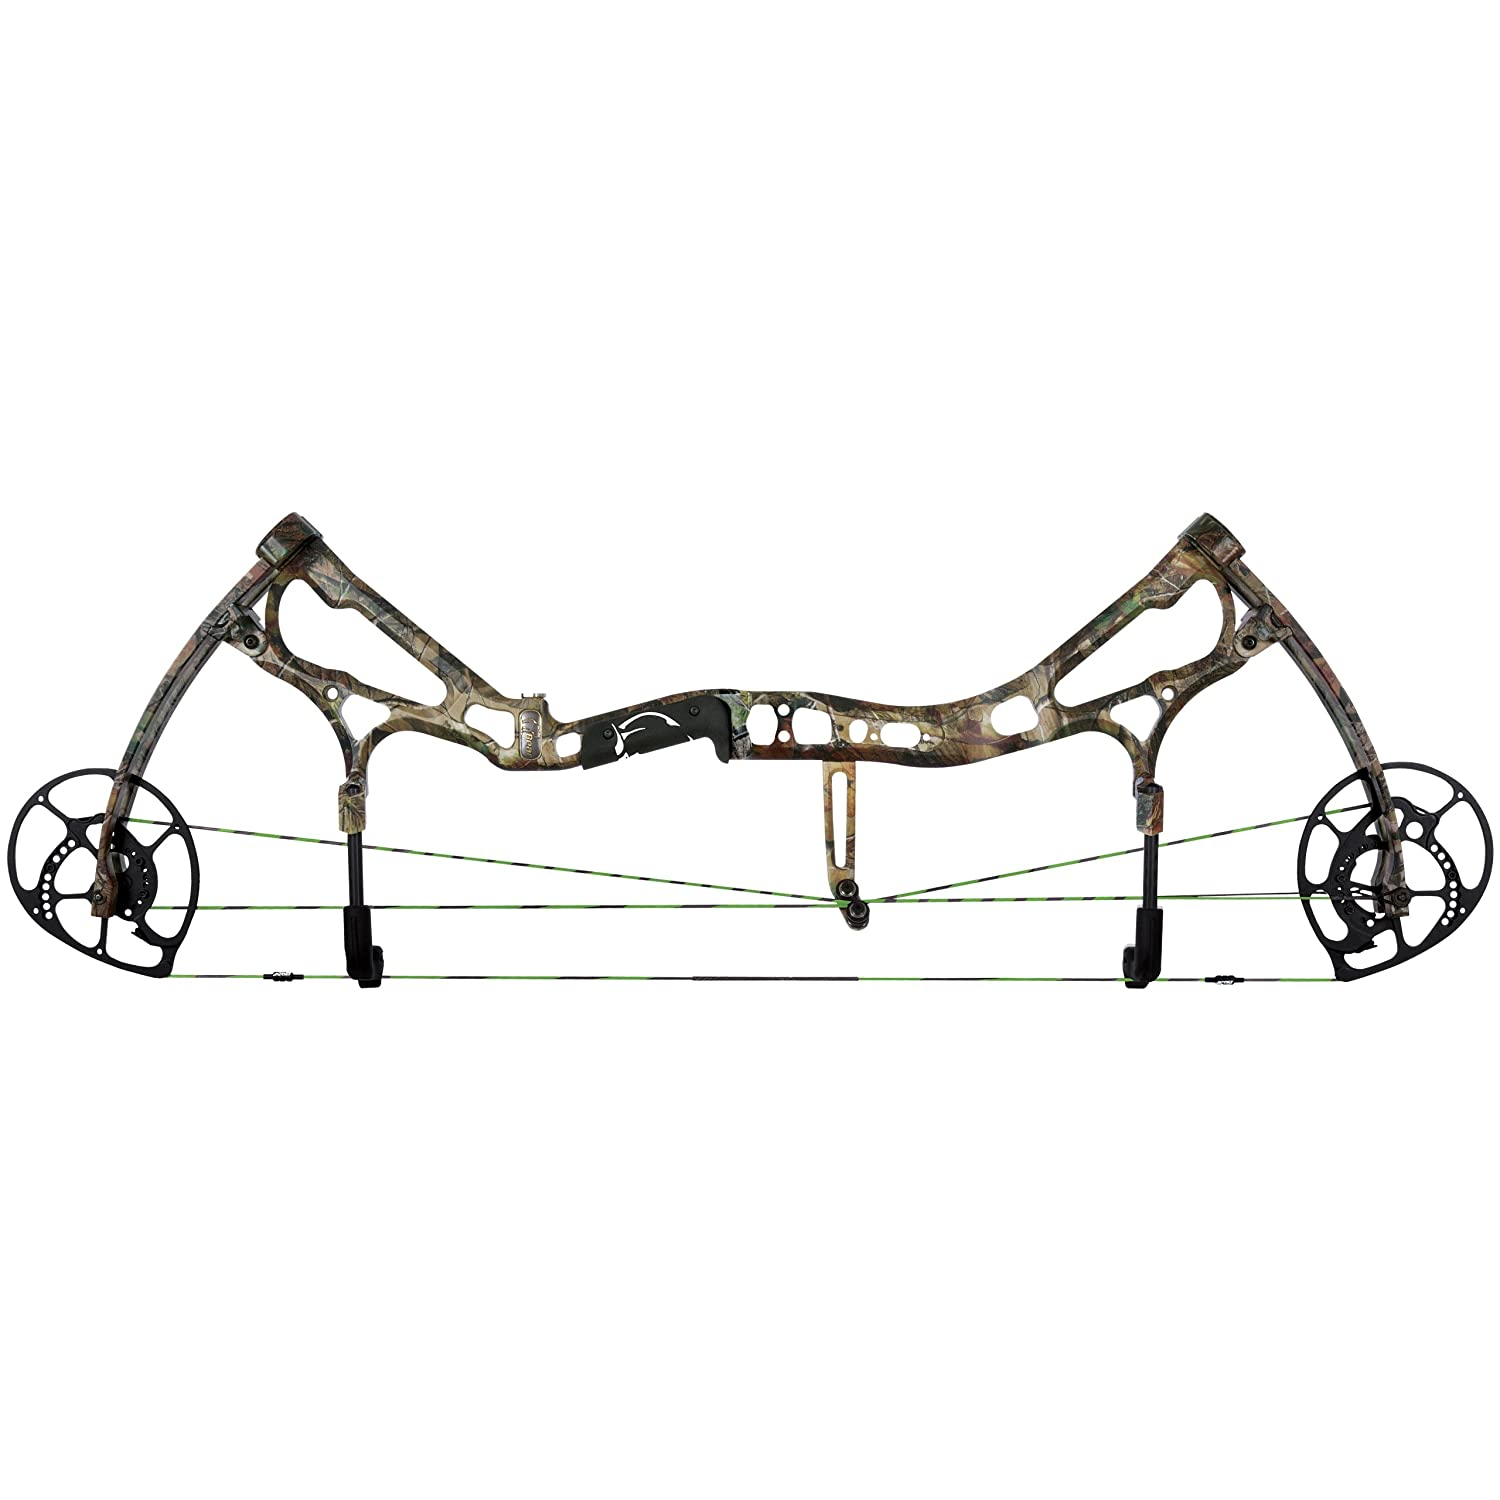 81 3HN dS8L. SL1500  What Compound Bow Should I Get? This Is A Great Review That You Have Ever Seen